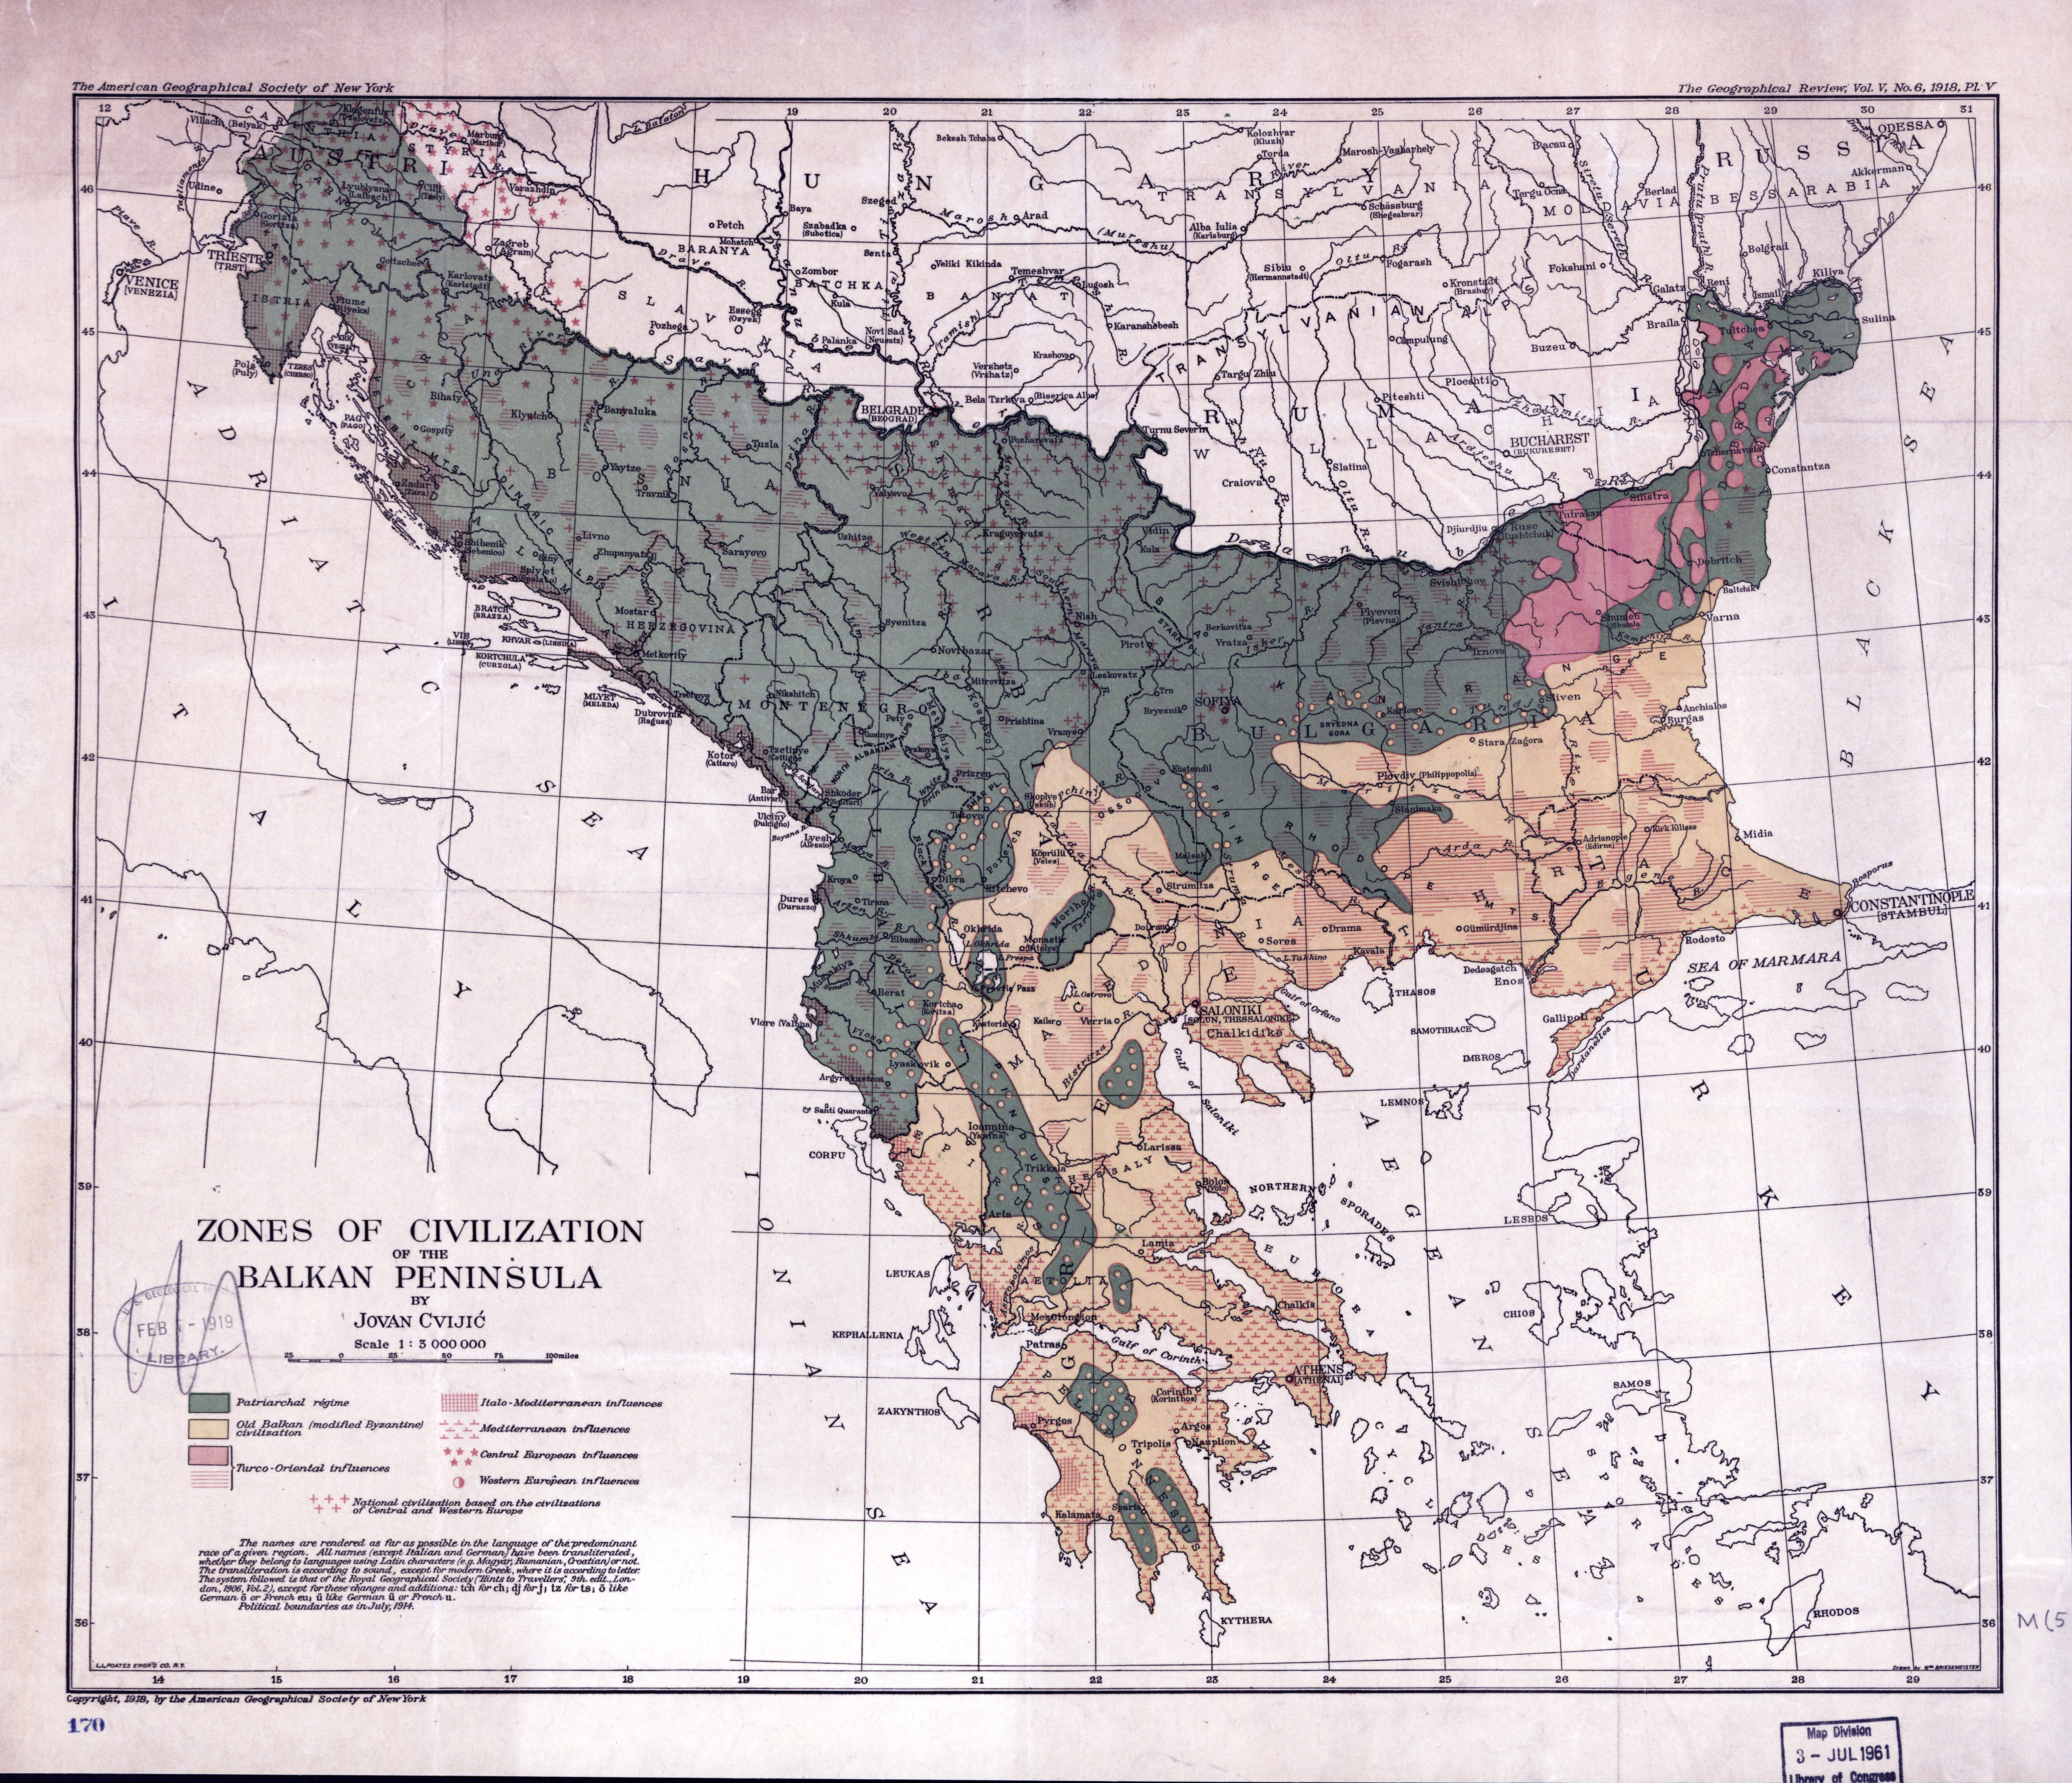 Large scale old map of zones of civilization of the Balkan Peninsula ...